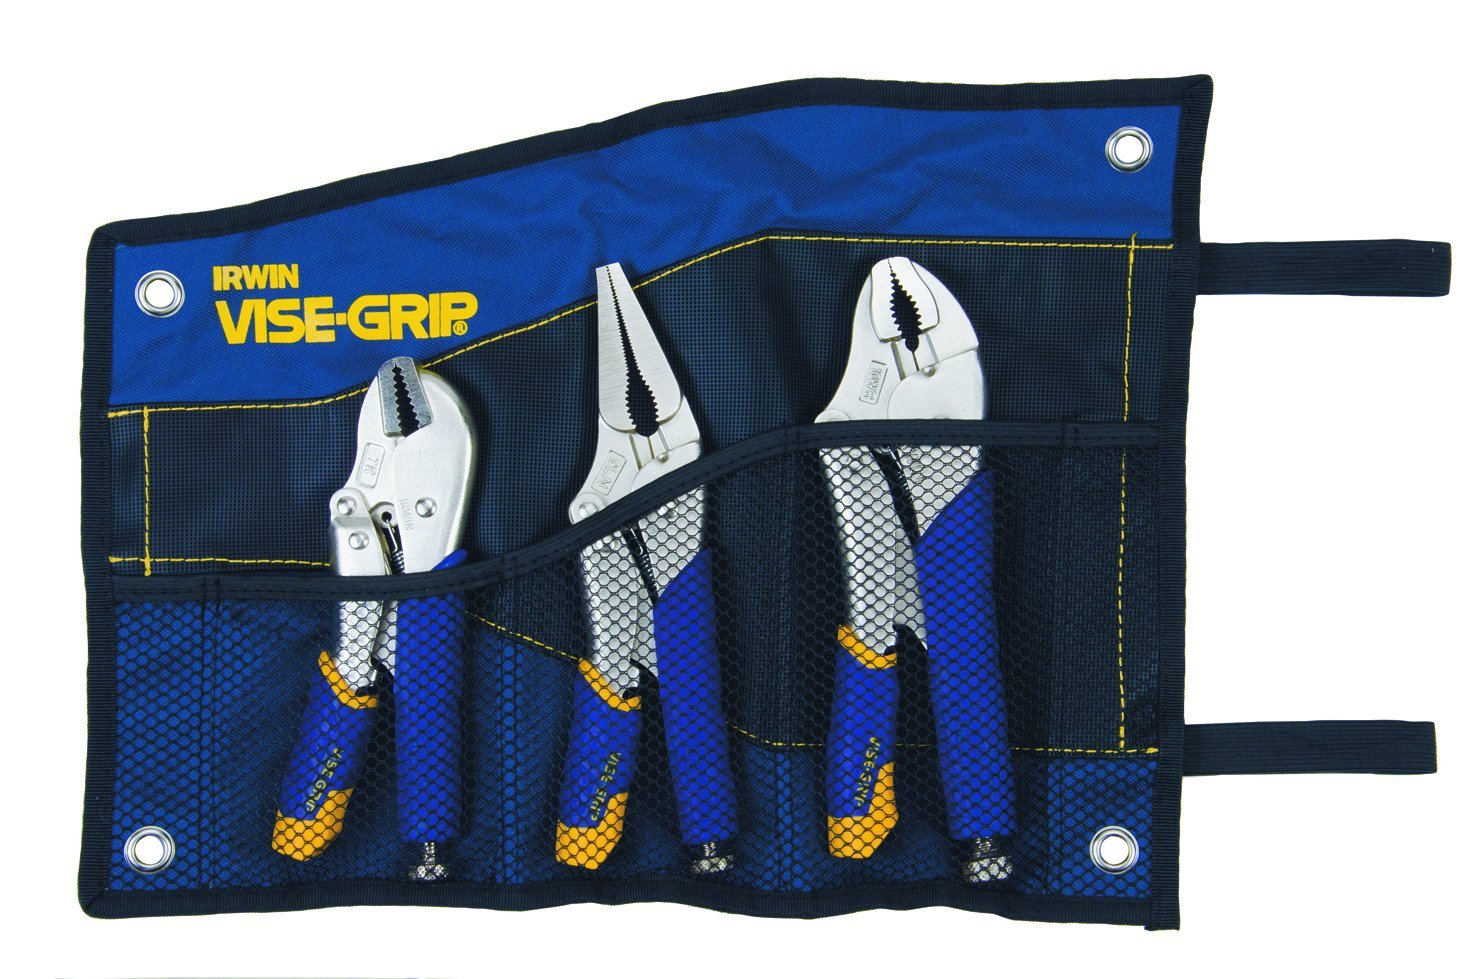 IRWIN Tools VISE-GRIP Locking Pliers Set, Fast Release, 3-Piece (76KBT) by Irwin Tools